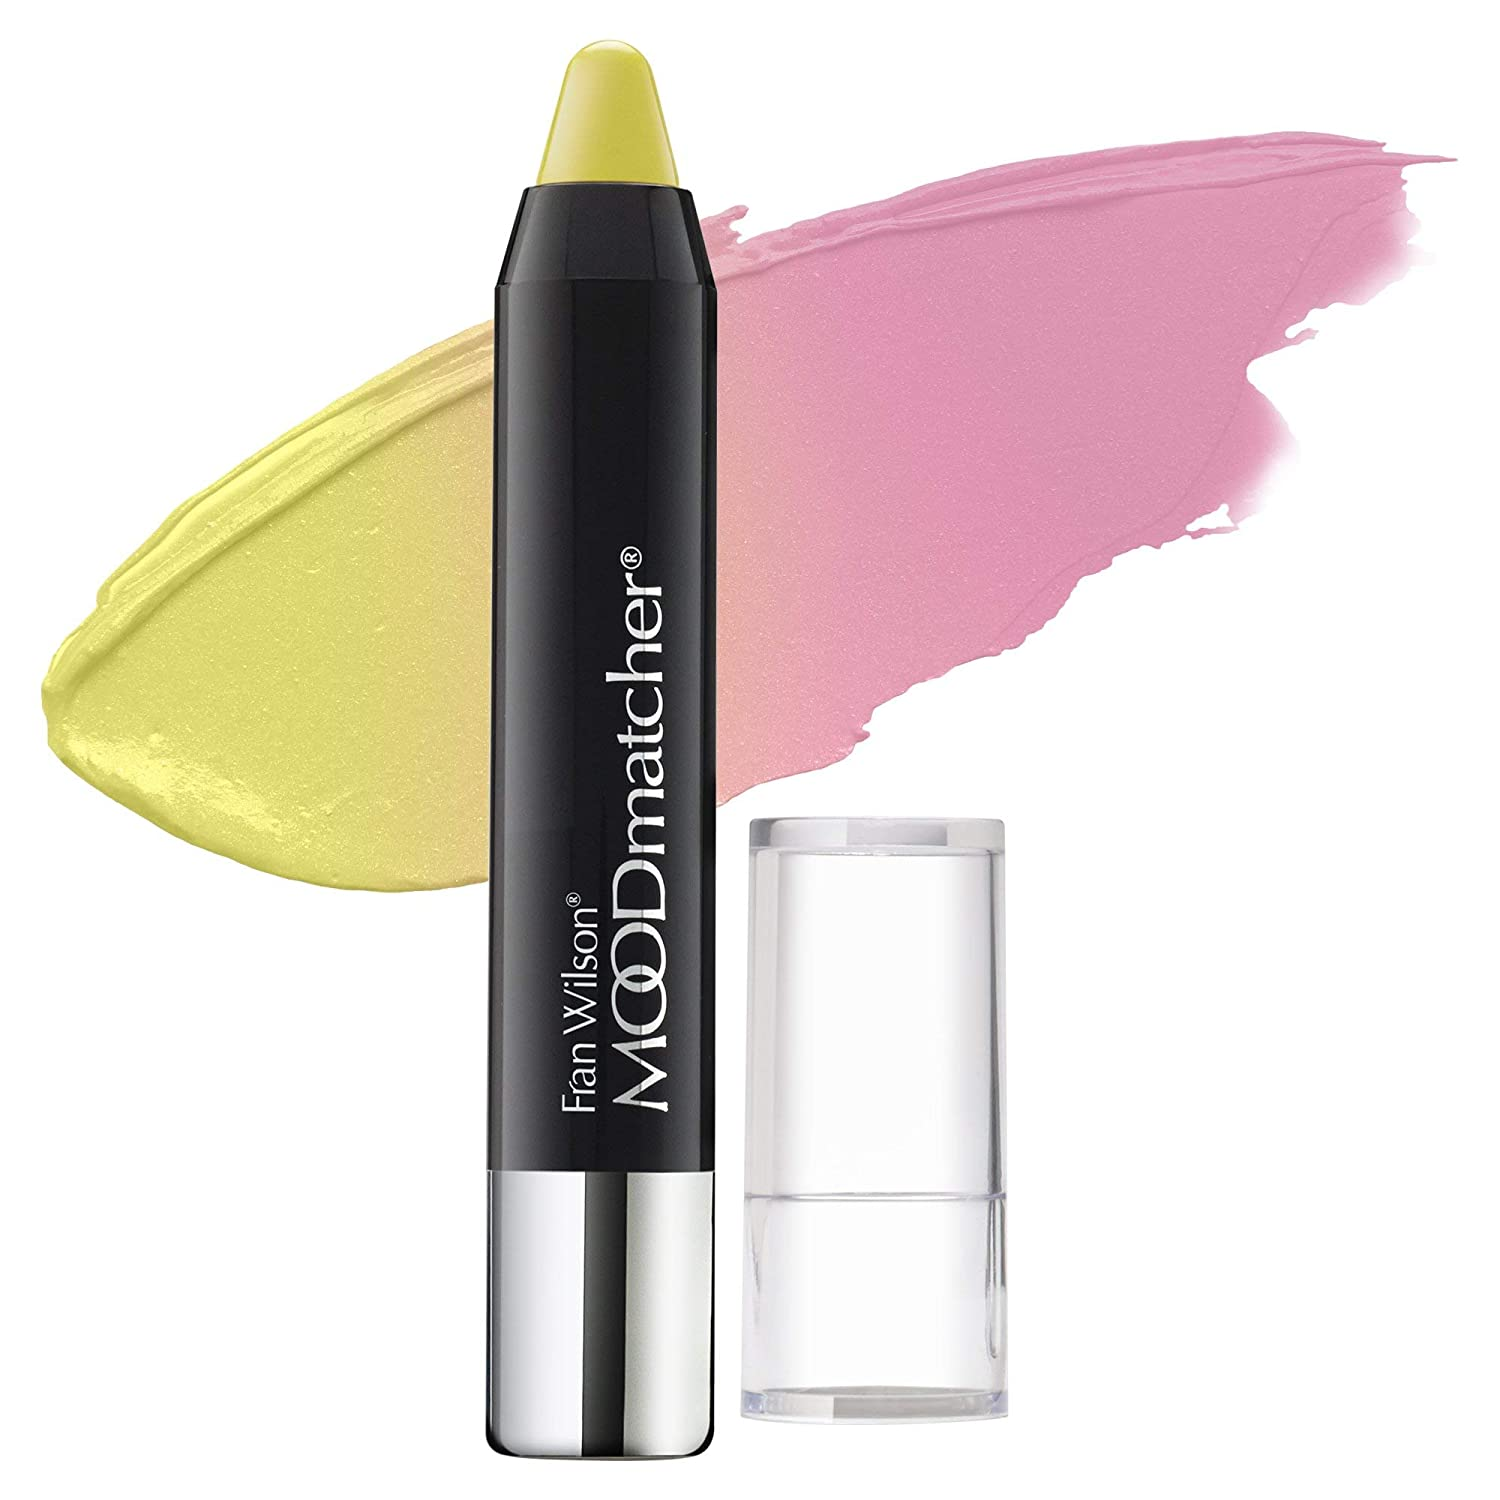 Fran Wilson Moodmatcher Luxe Twist Stick Yellow